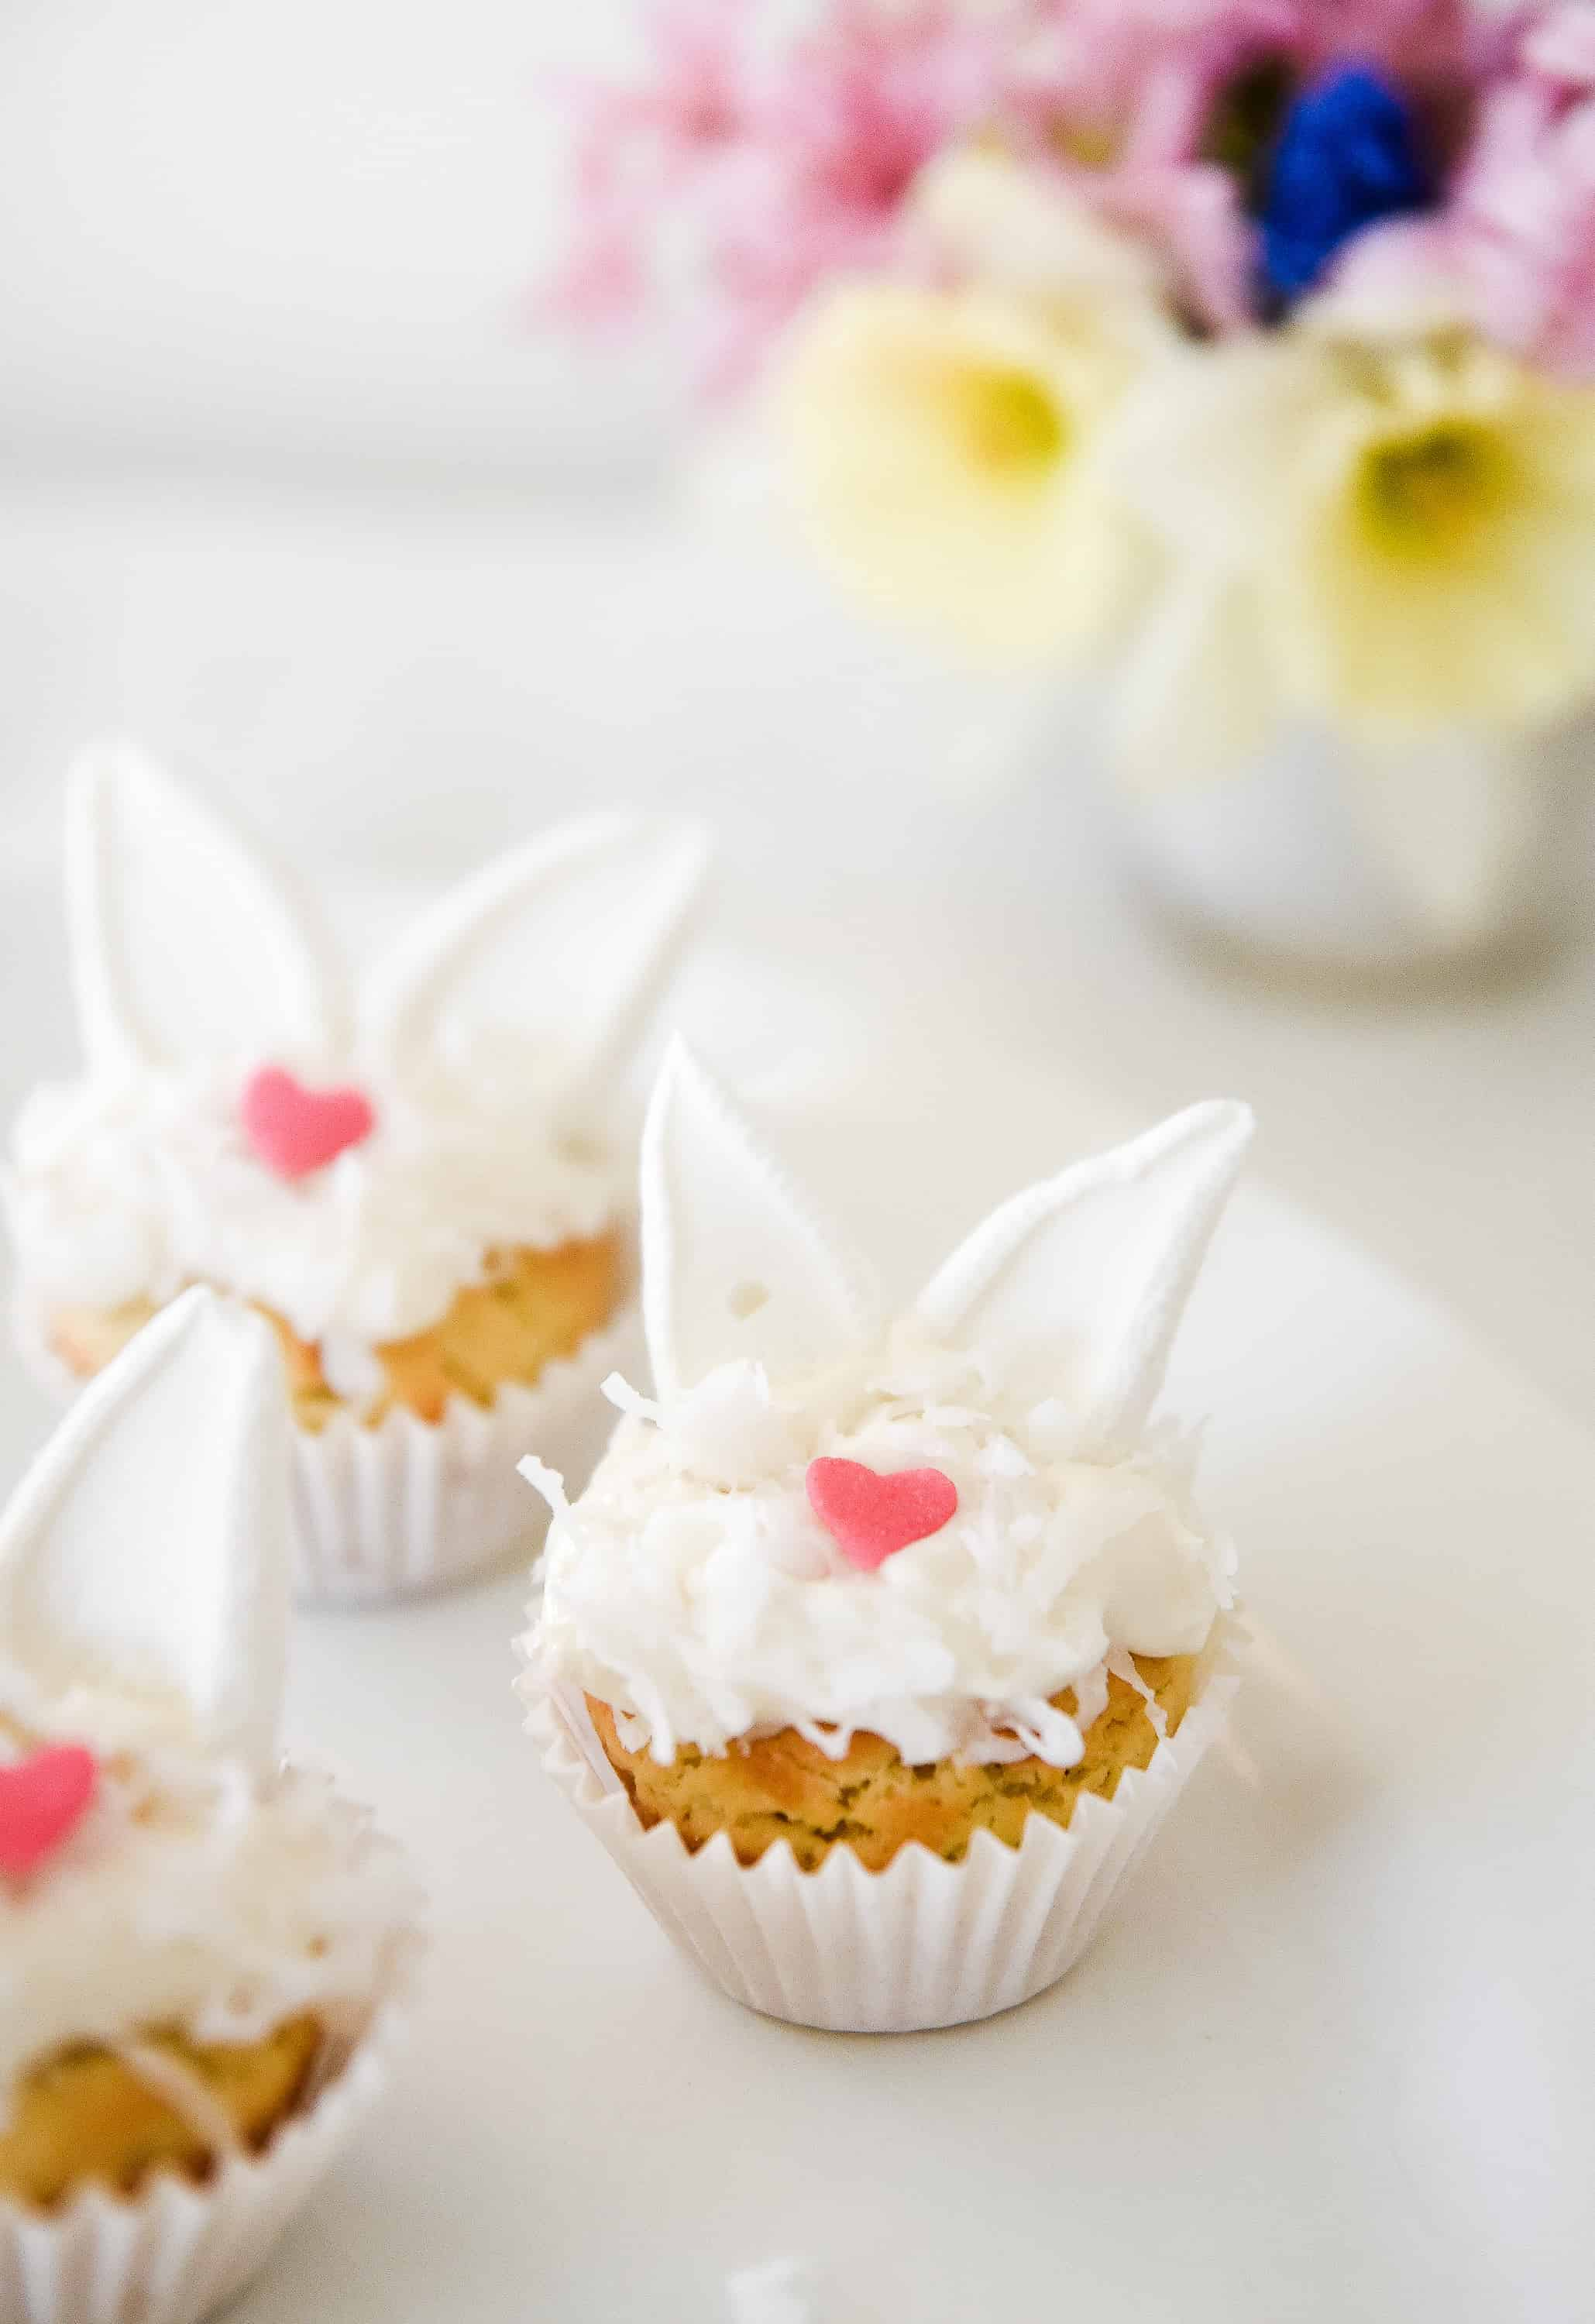 These Easter bunny sugar cookies couldn't get any sweeter! Take a simple sugar cookie and turn it into the perfect Easter dessert by adding marshmallow bunny ears!